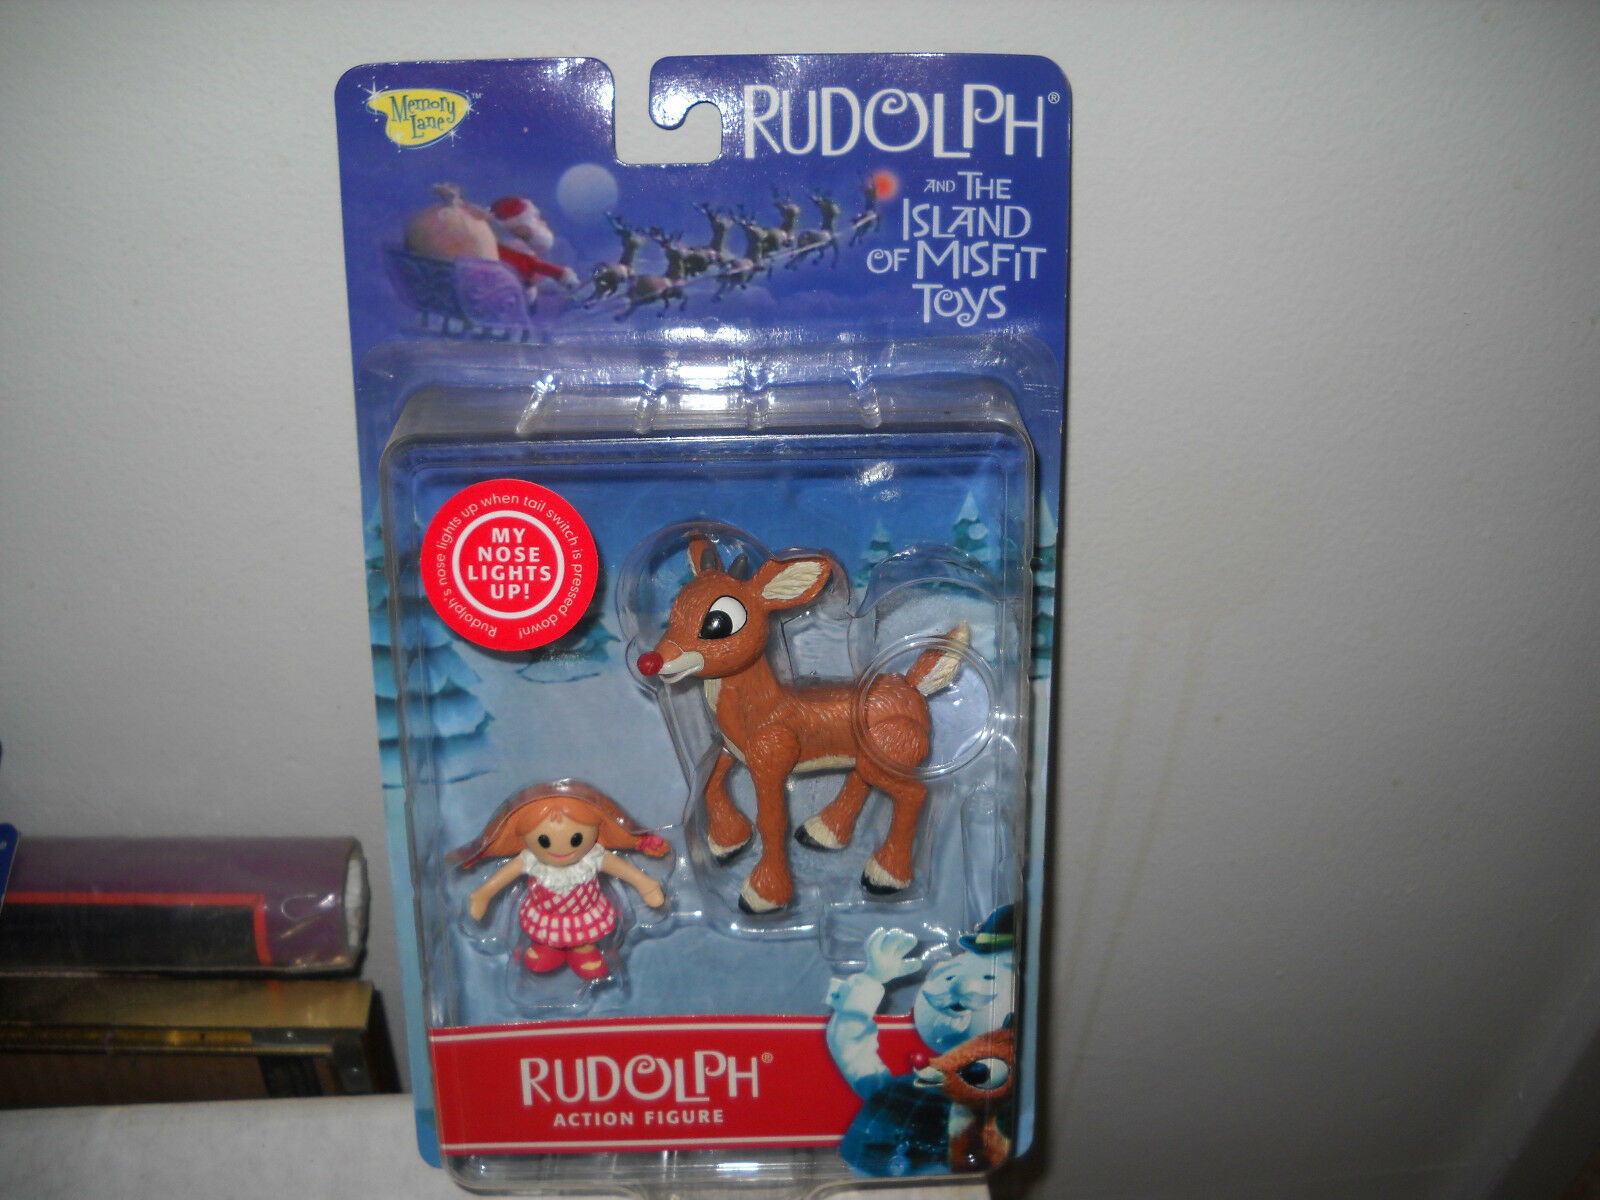 2000 Rudolph Rudolph Rudolph and the Island of Misfit Toys-Rudolph f0300e